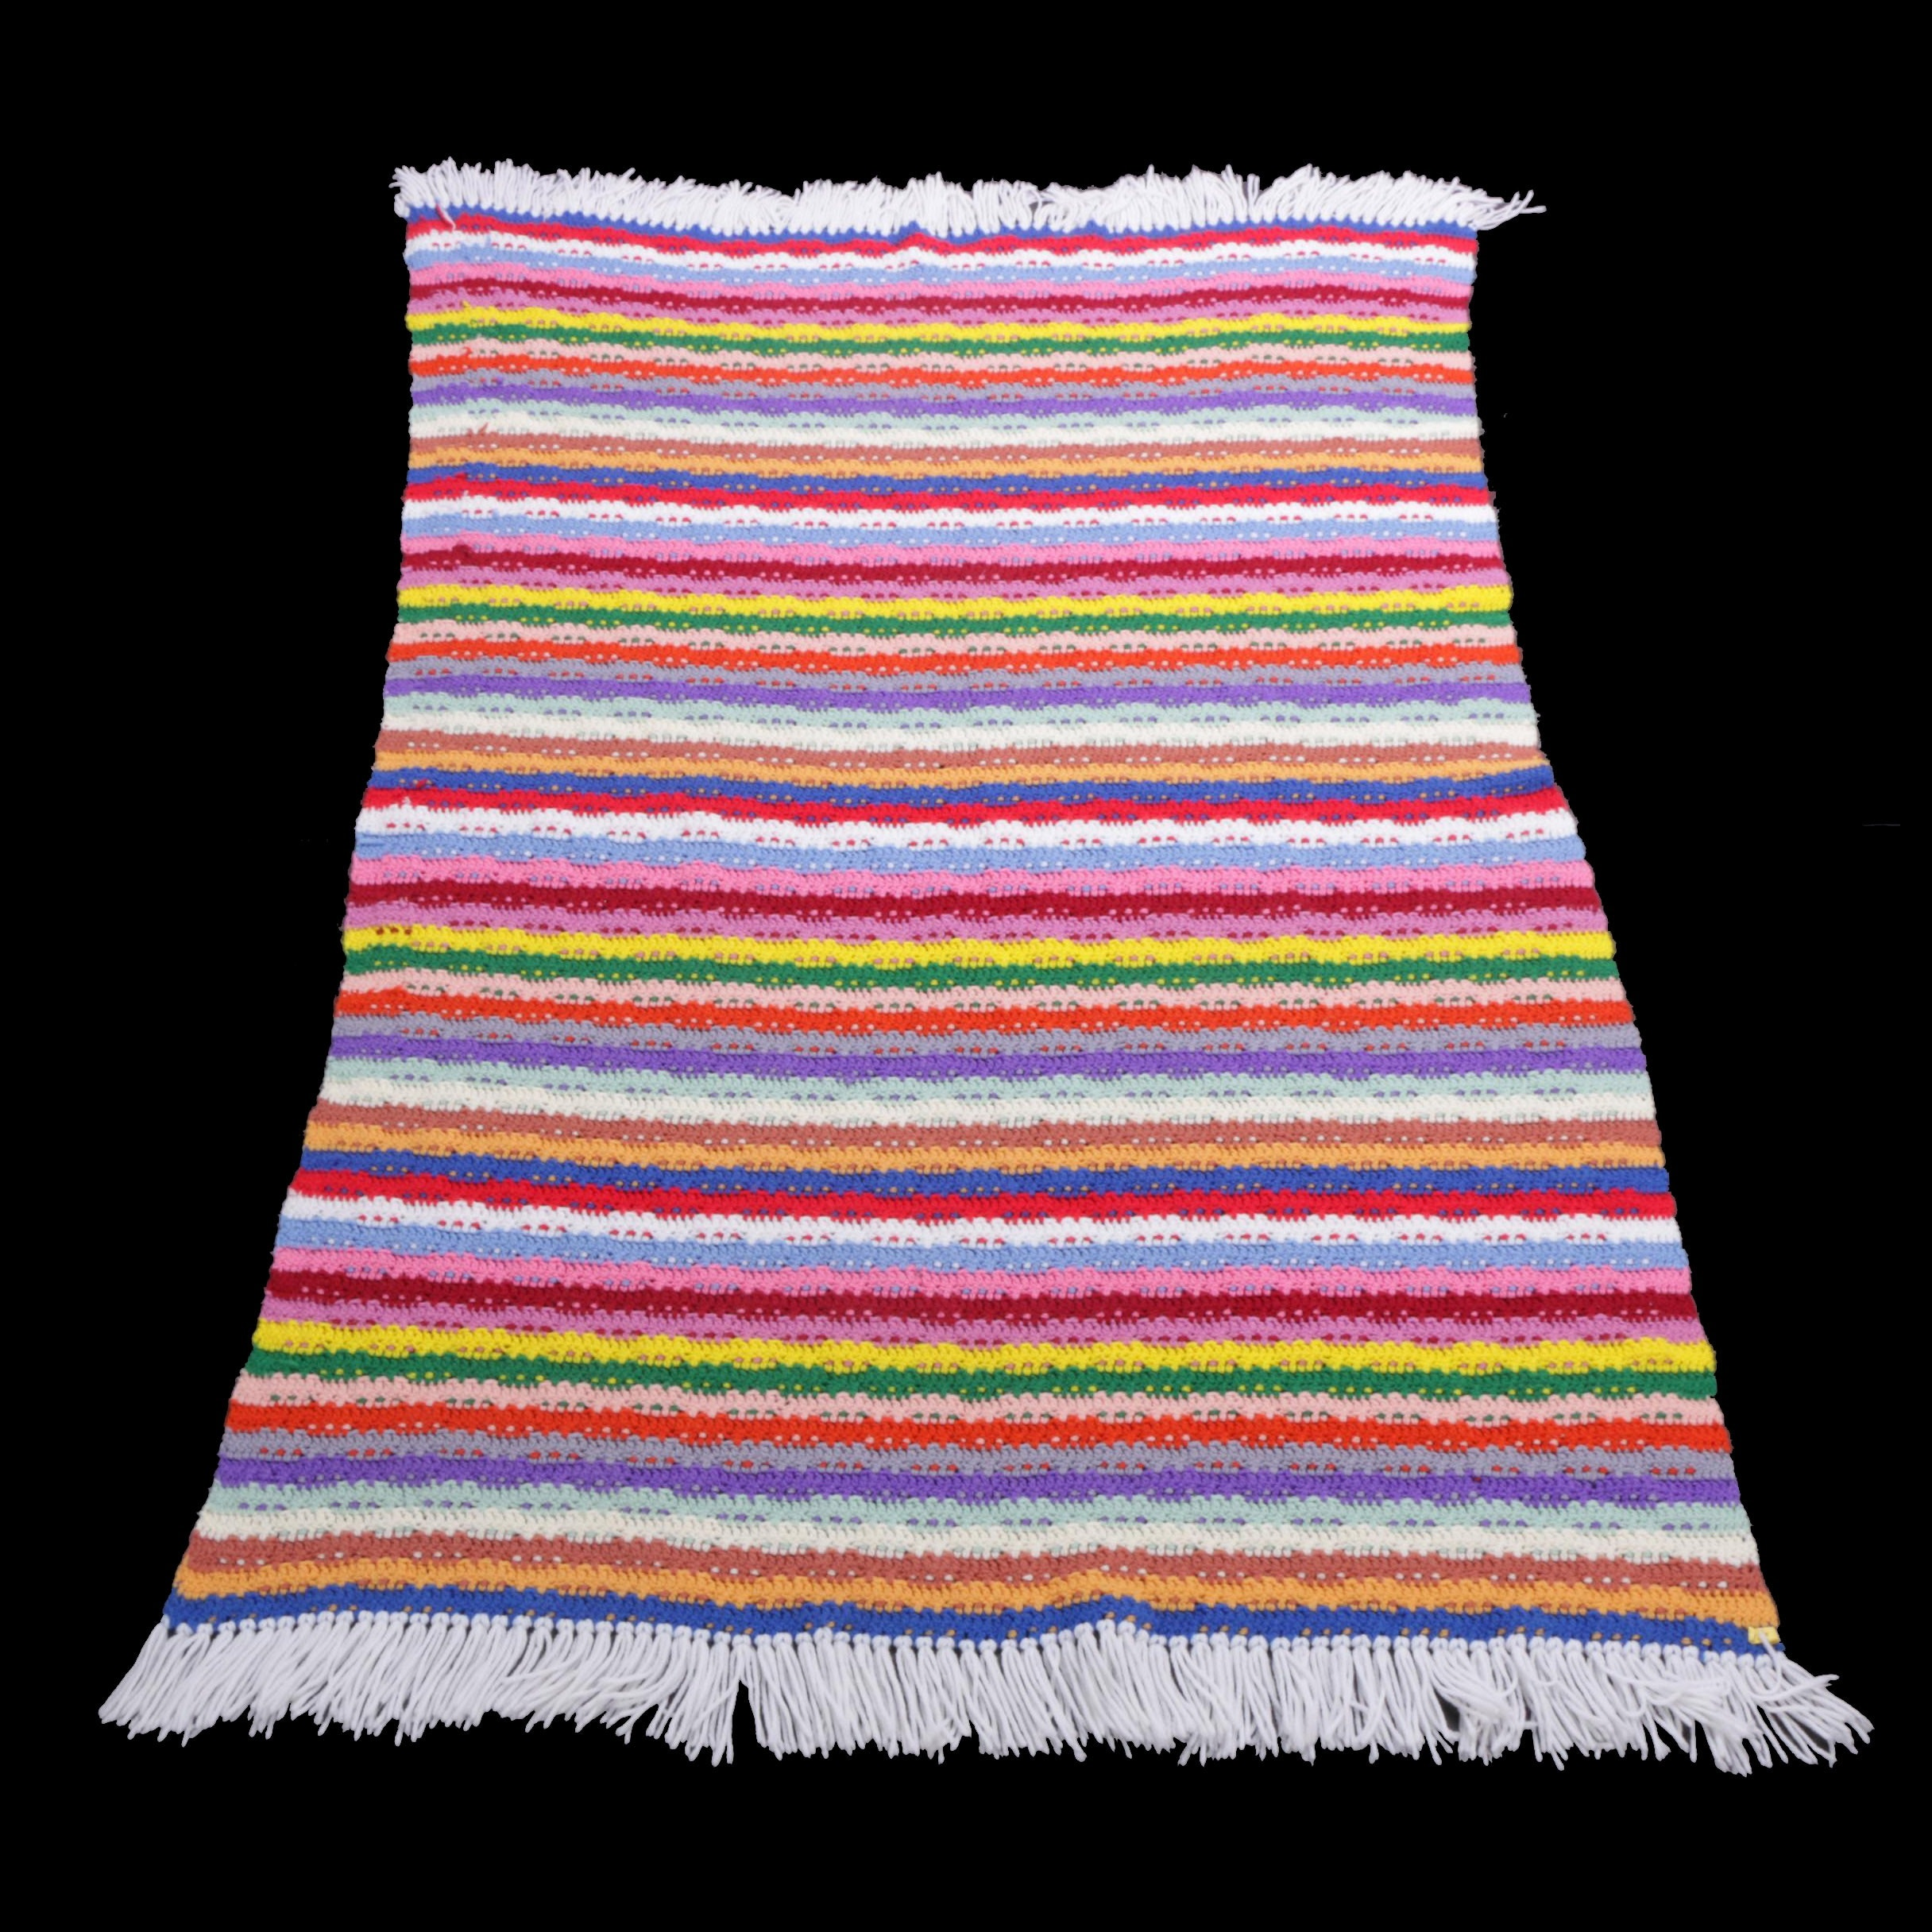 Colorful Knitted Afghan